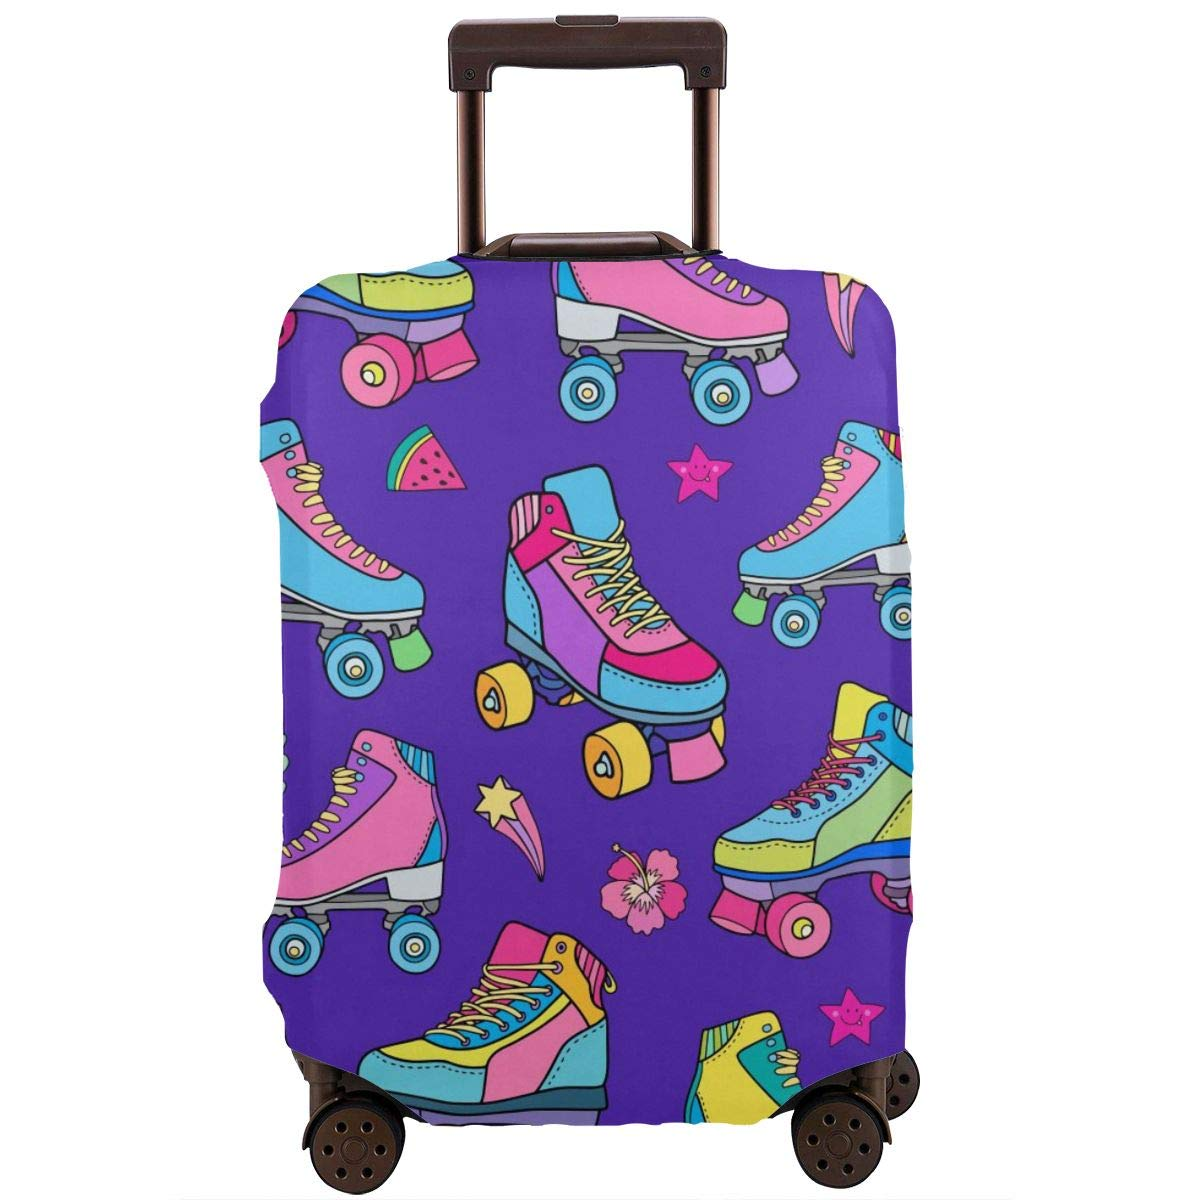 Roller Skates Travel Luggage Cover Suitcase Protector Washable Zipper Baggage Cover